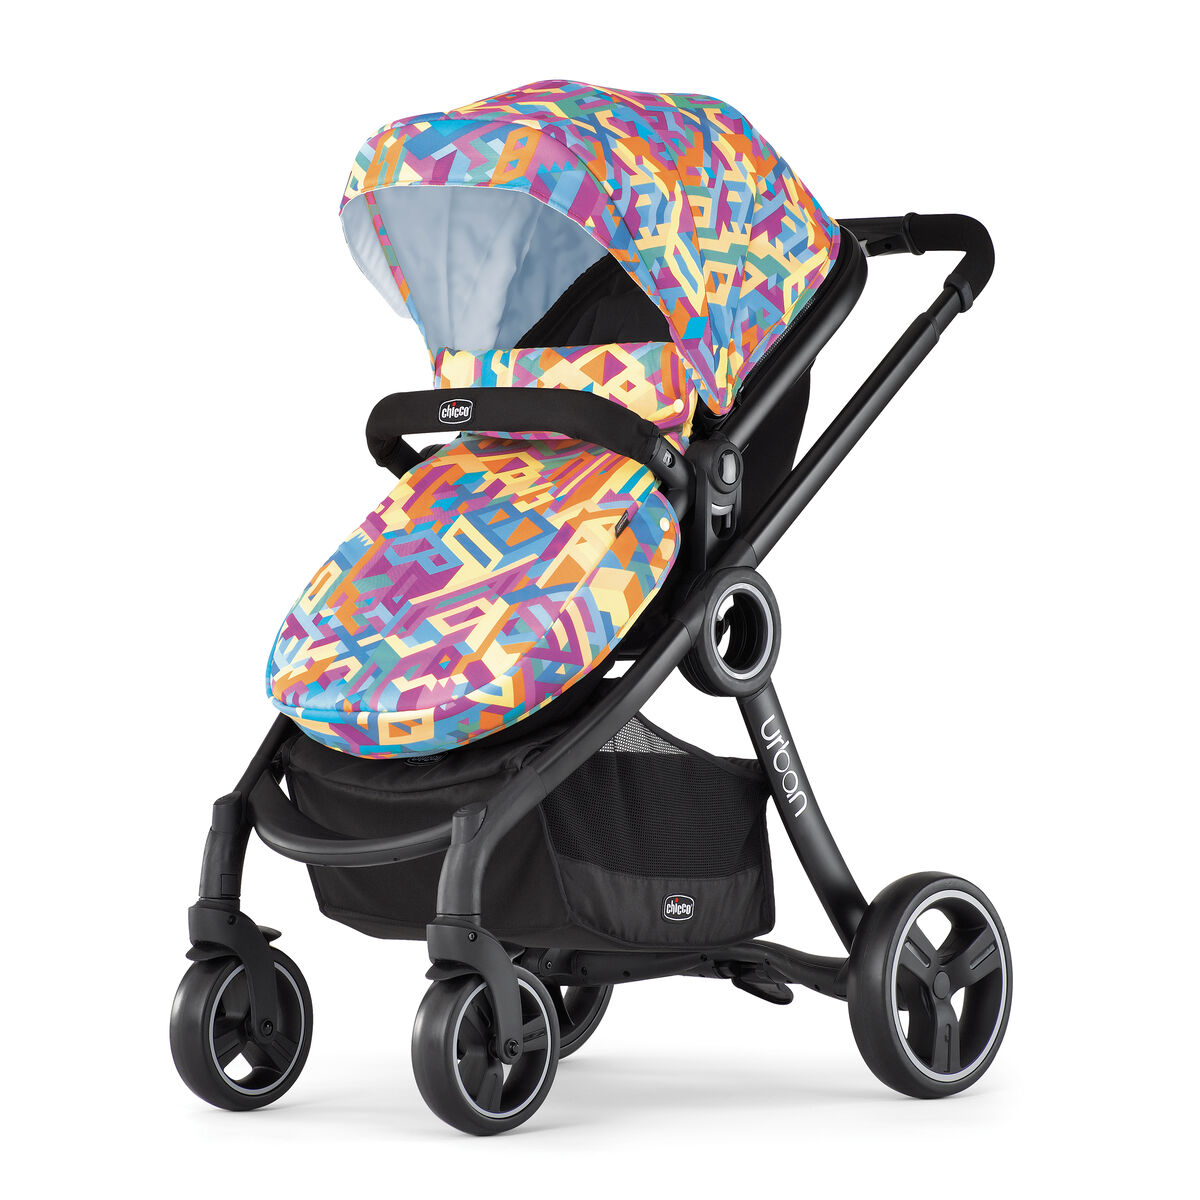 baby gear  baby strollers  chicco stroller - kate's fashion now allows americans to get their hands on a slice of hercheeky